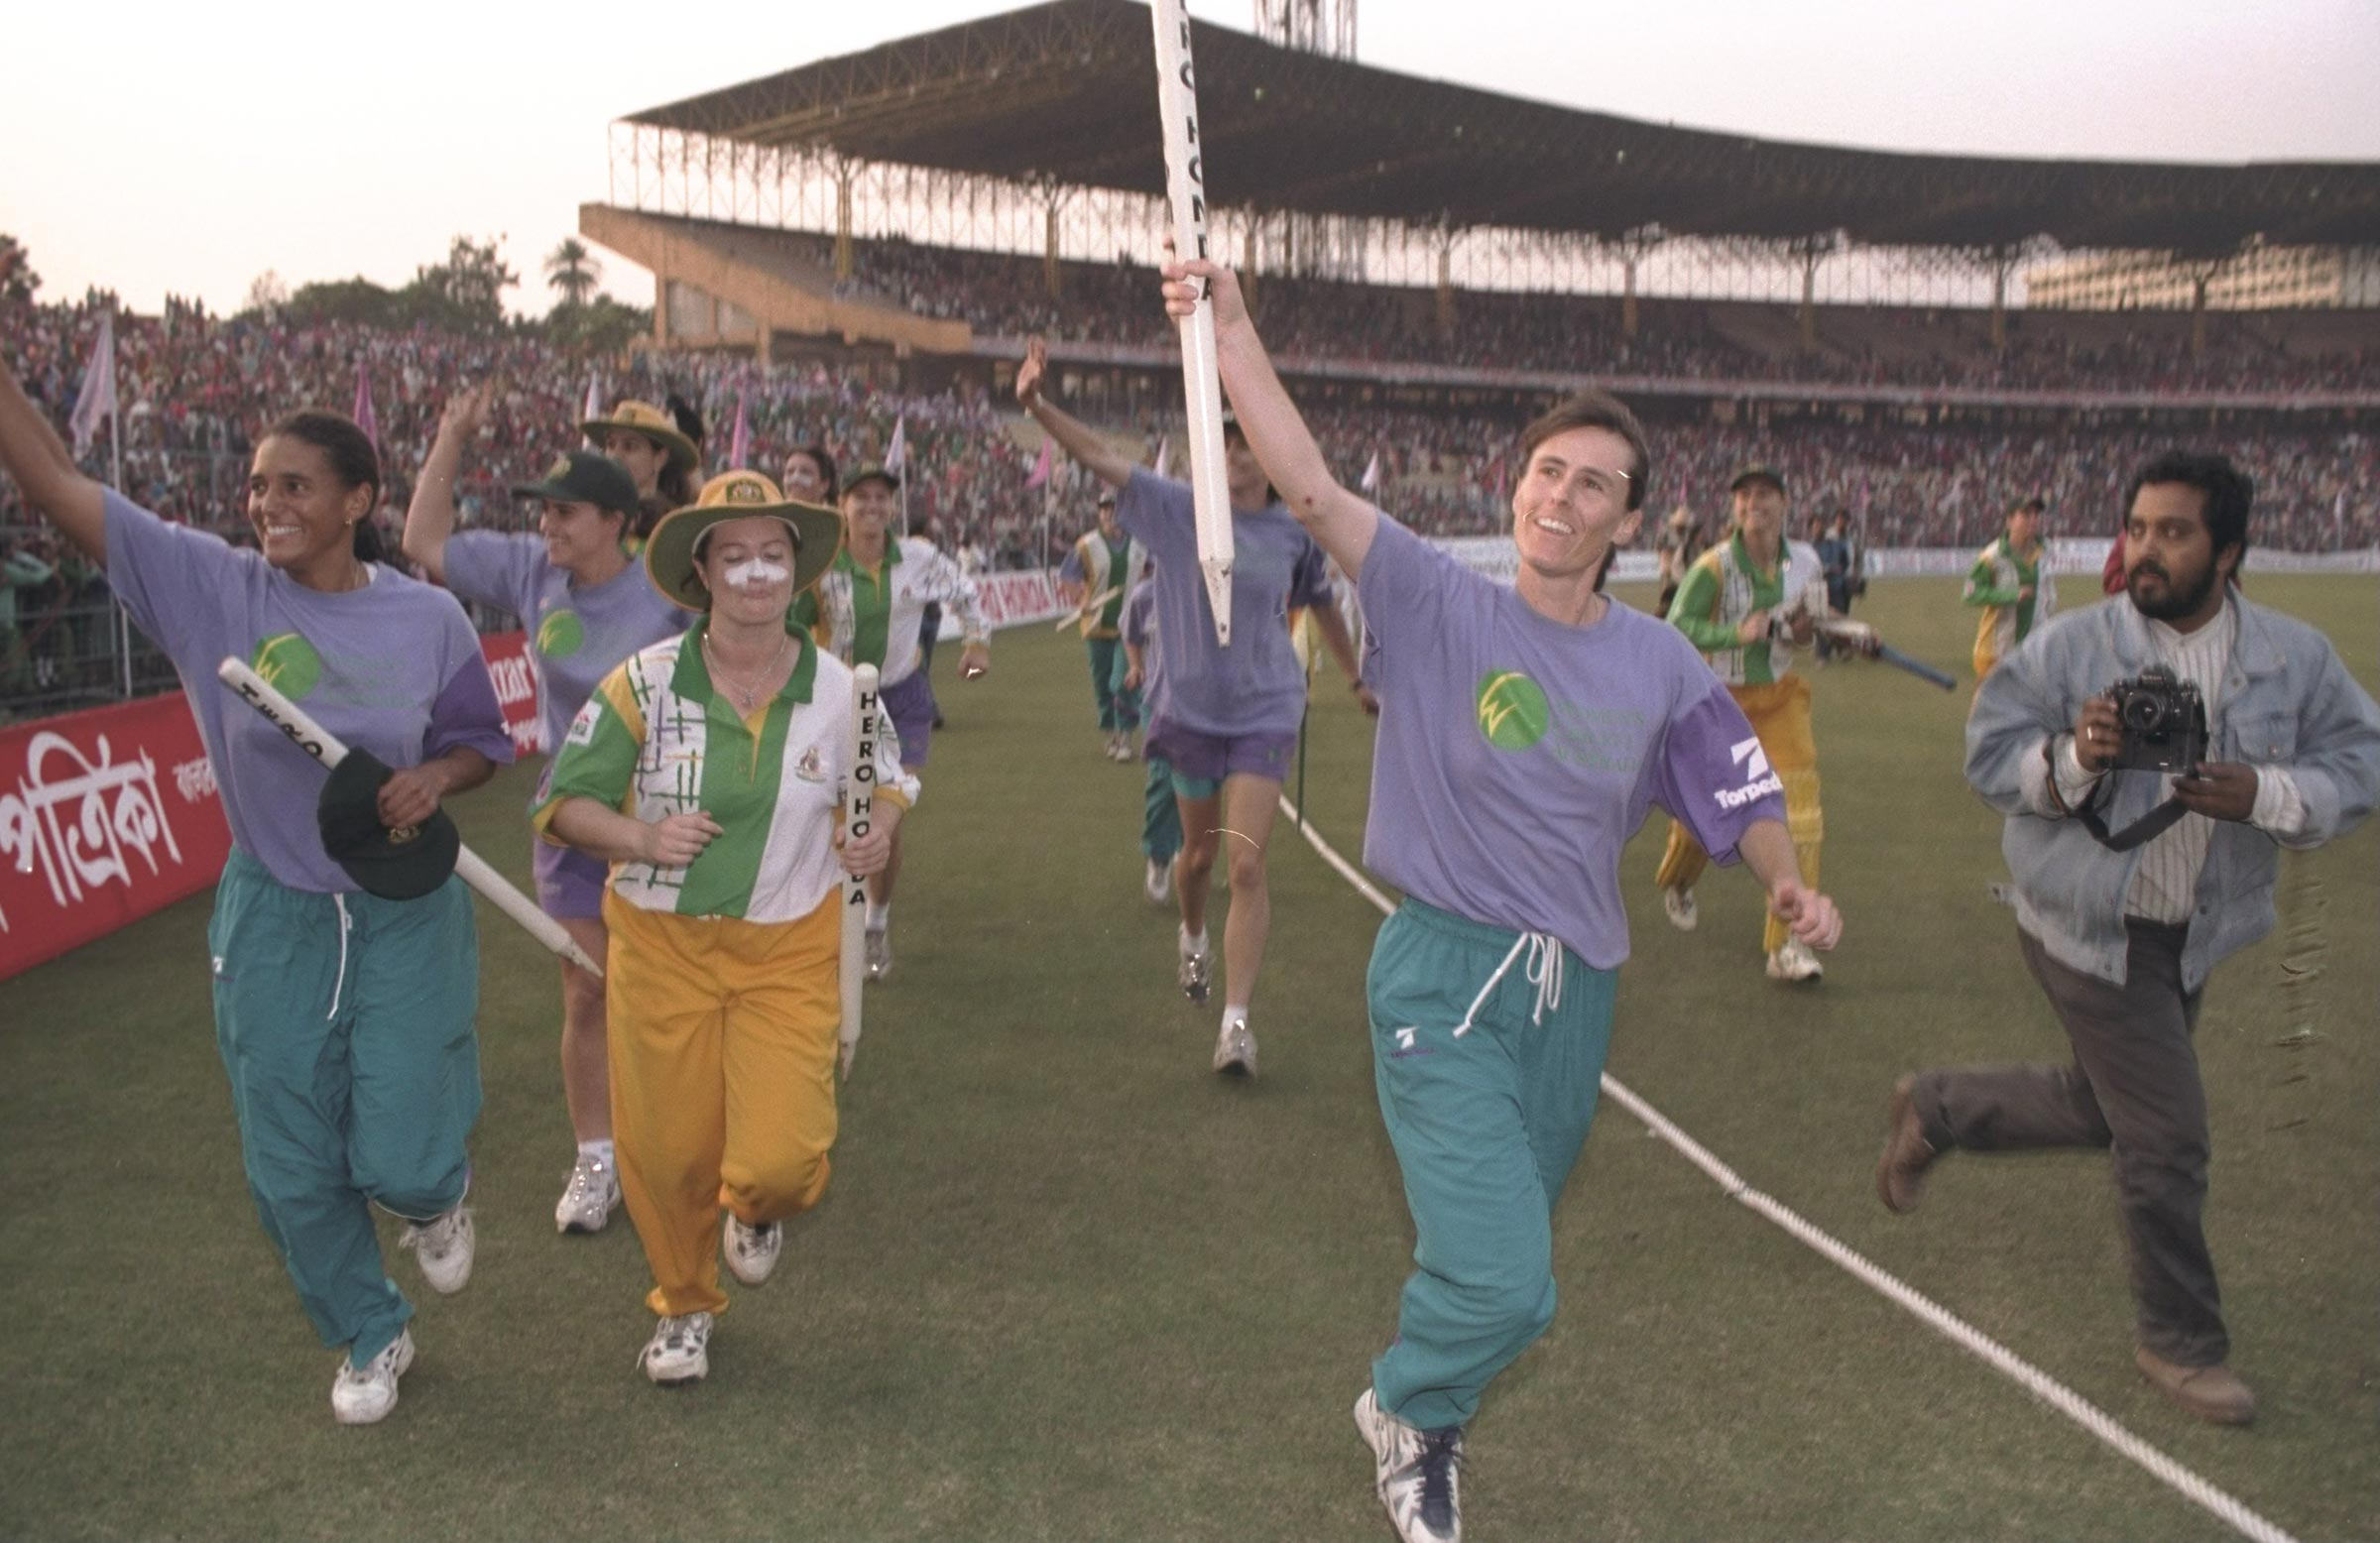 Clark and Australia celebrate their 1997 World Cup win // Getty